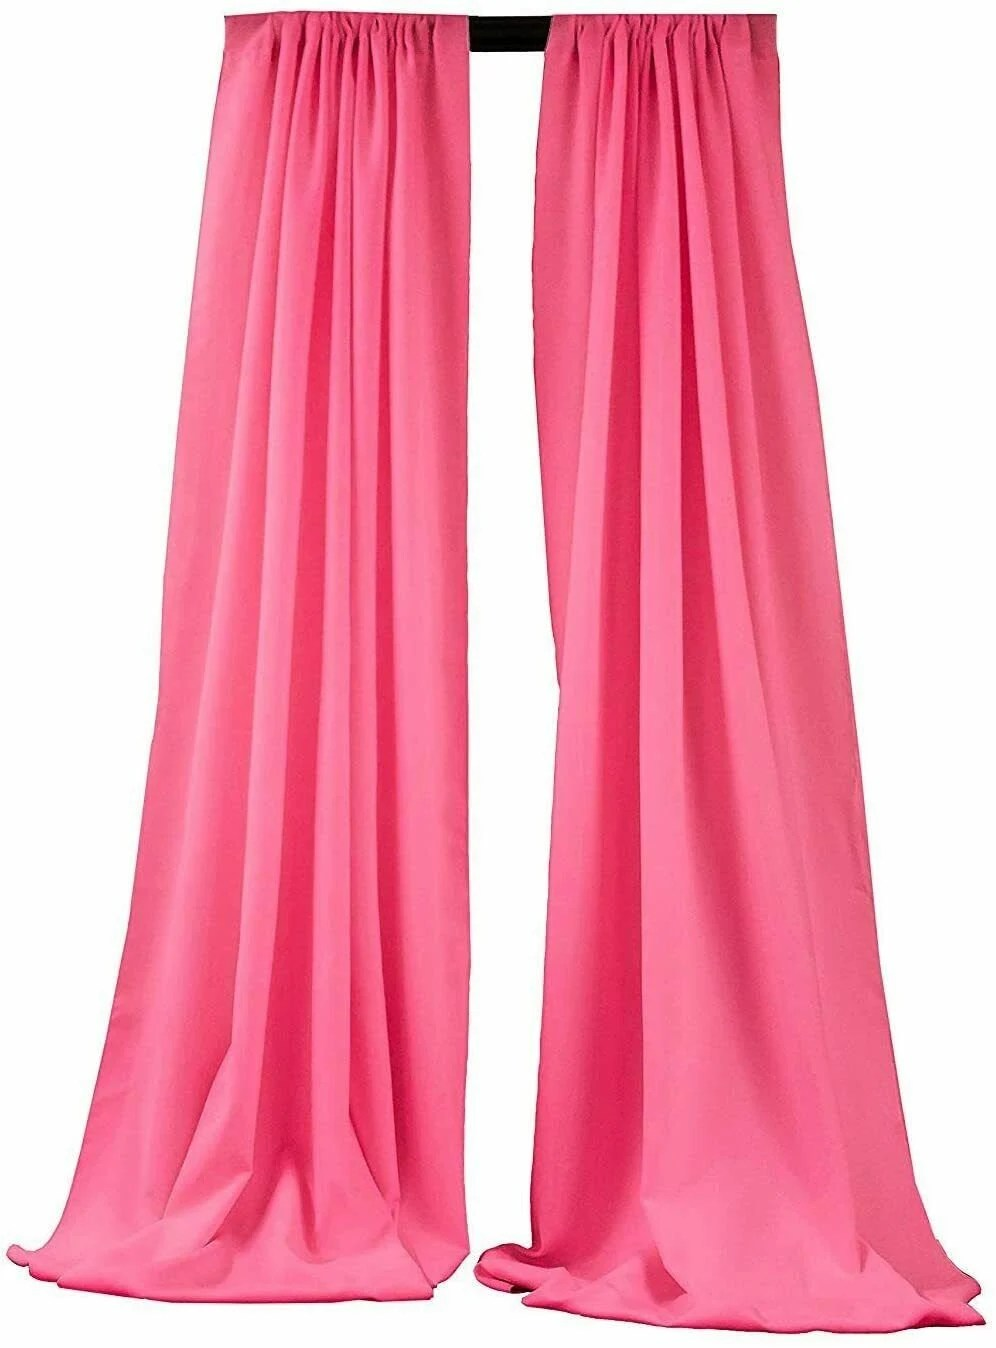 hot pink curtains etsy